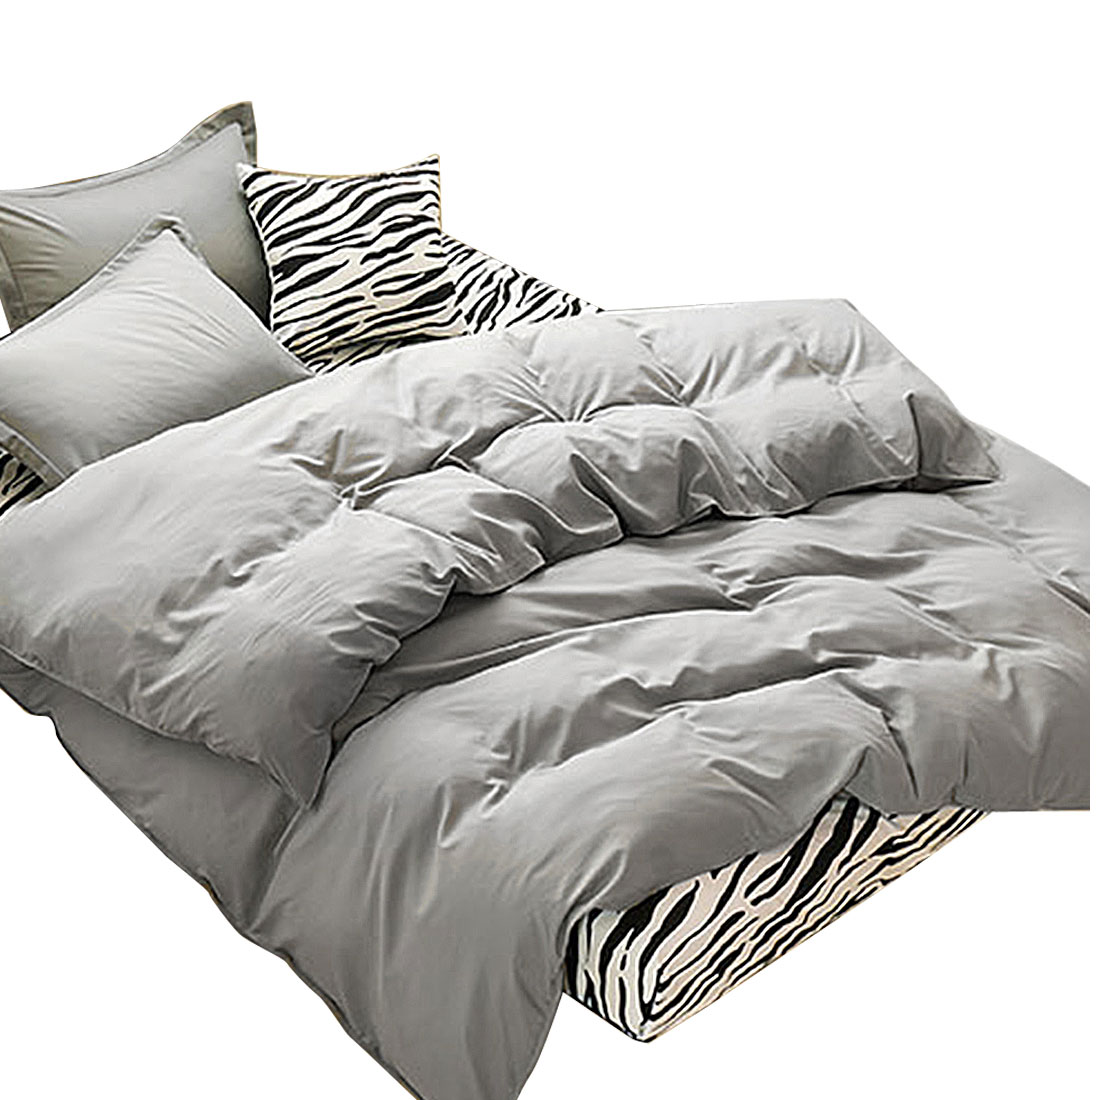 Bedroom Duvet Quilt Cover Pillowcase Bedding Set Bedclothes Gray King Size